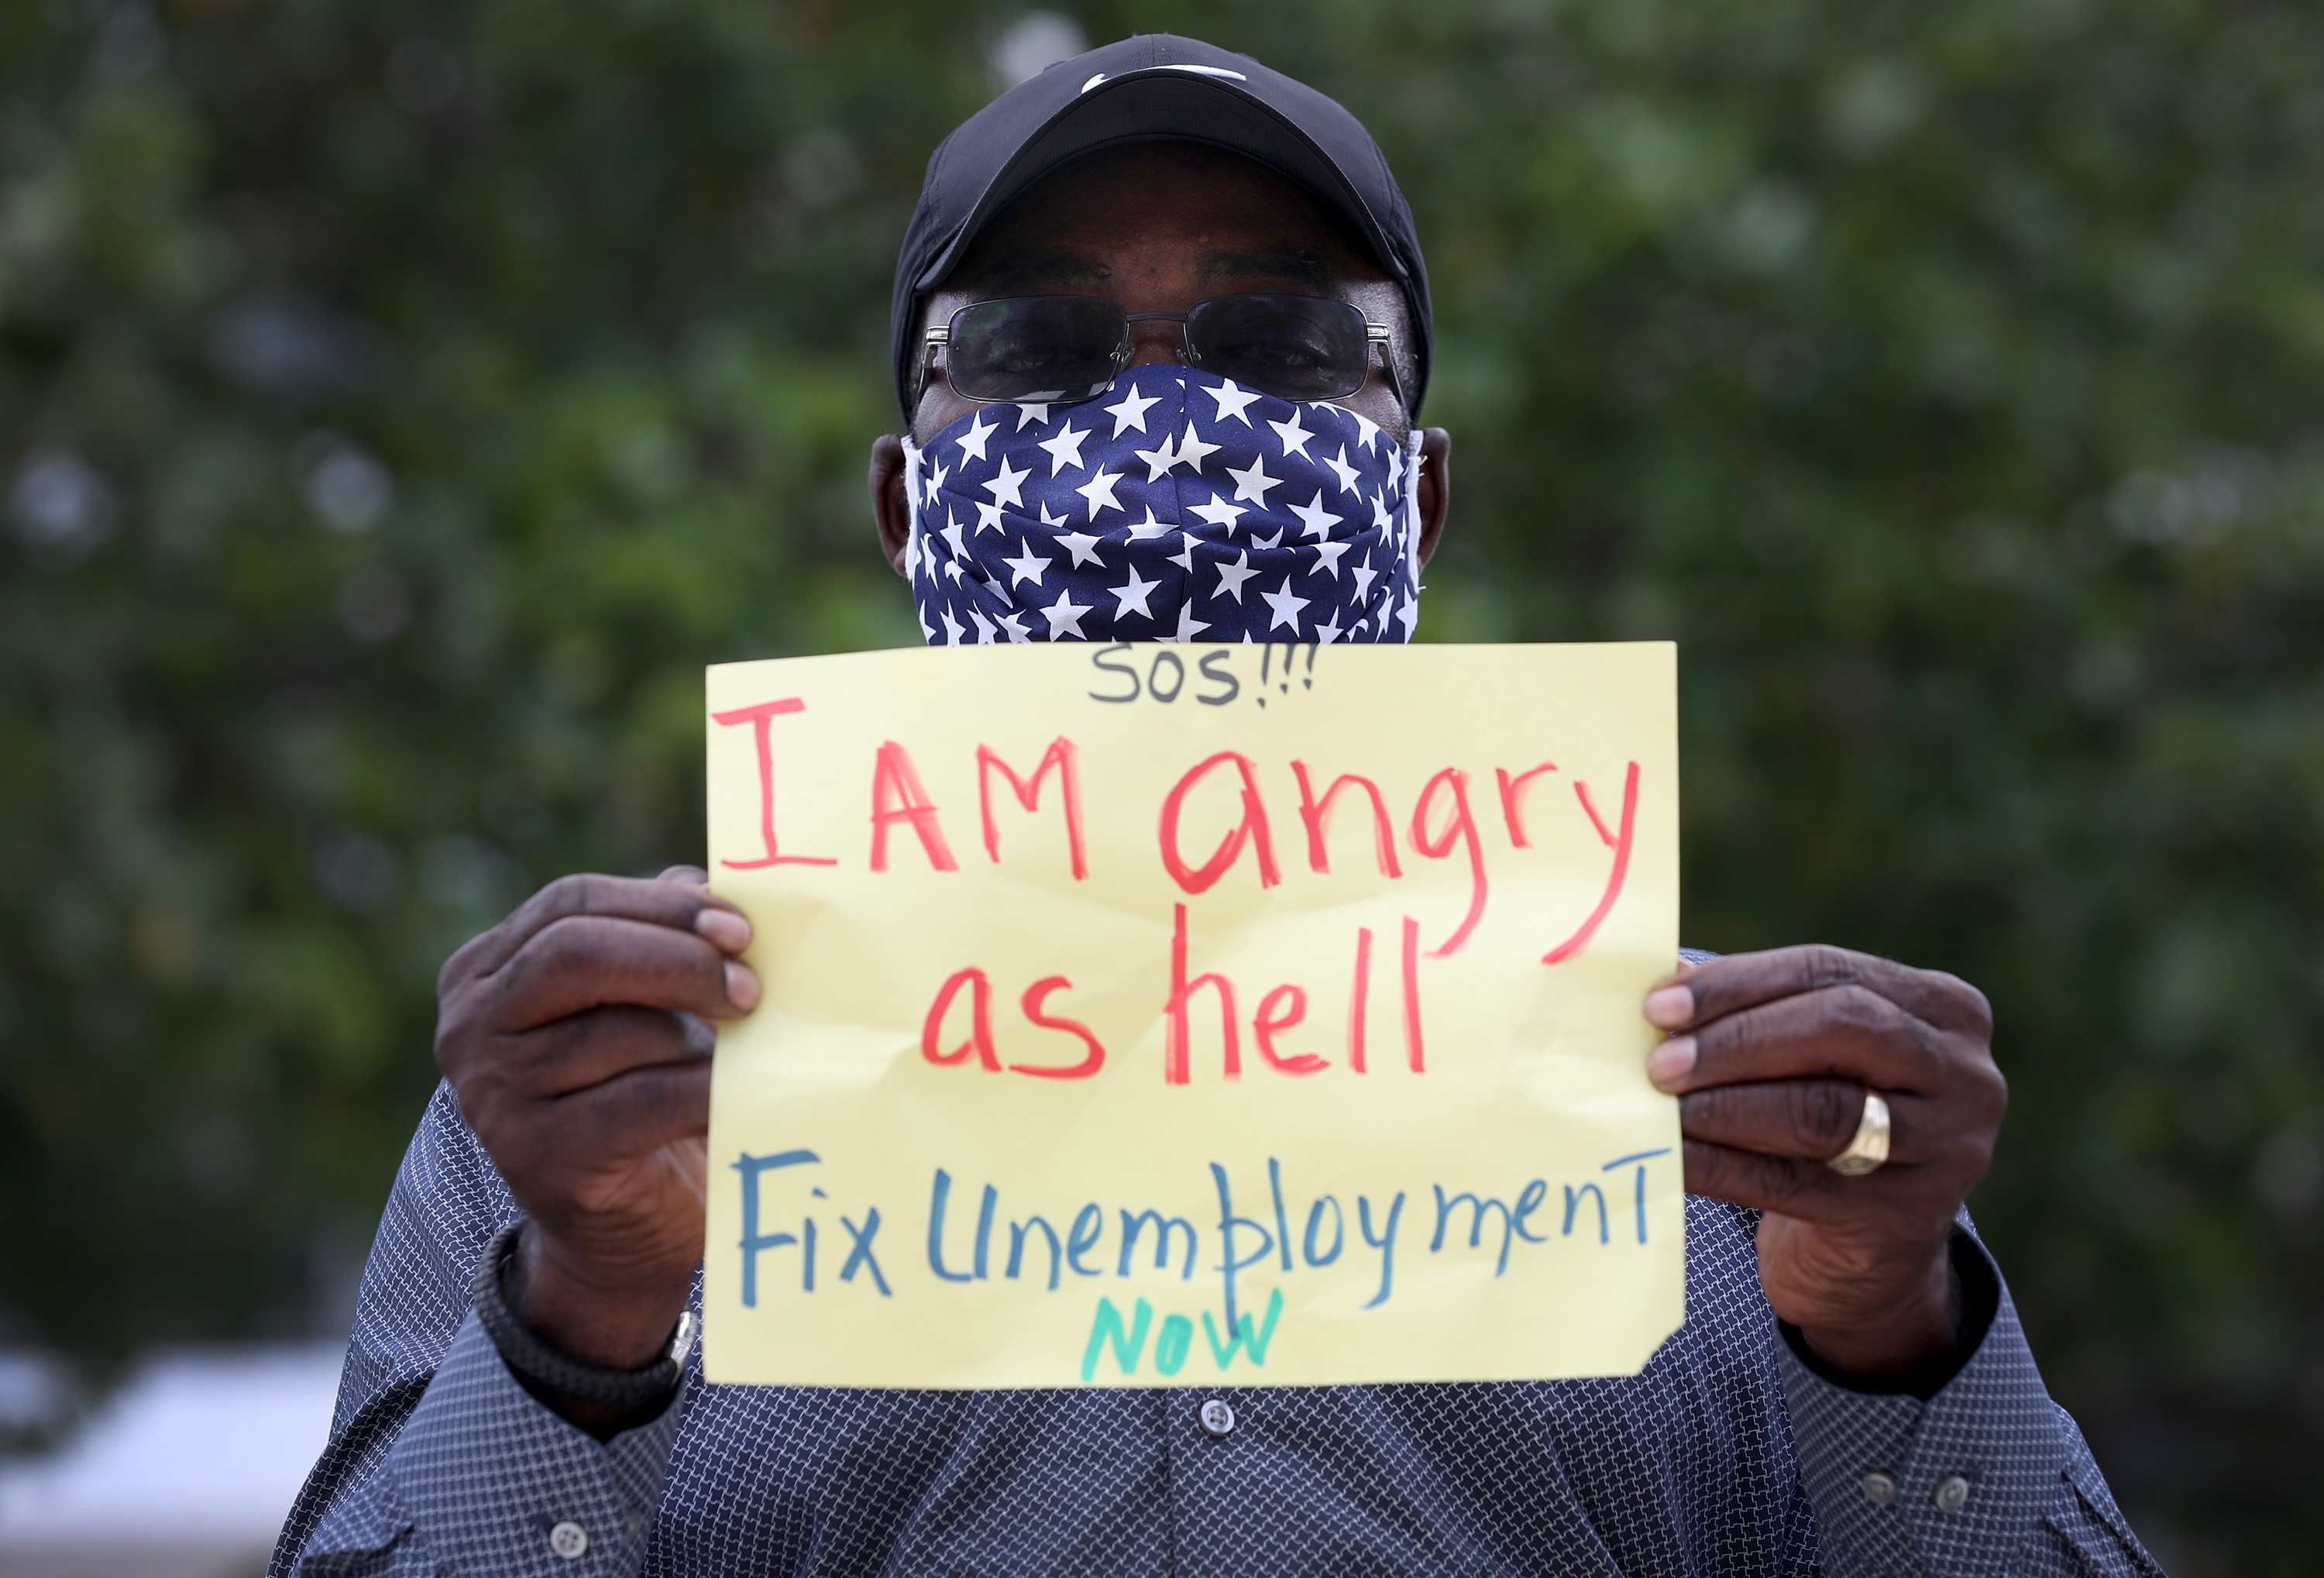 Nearly 43 million Americans have filed for unemployment benefits during the pandemic